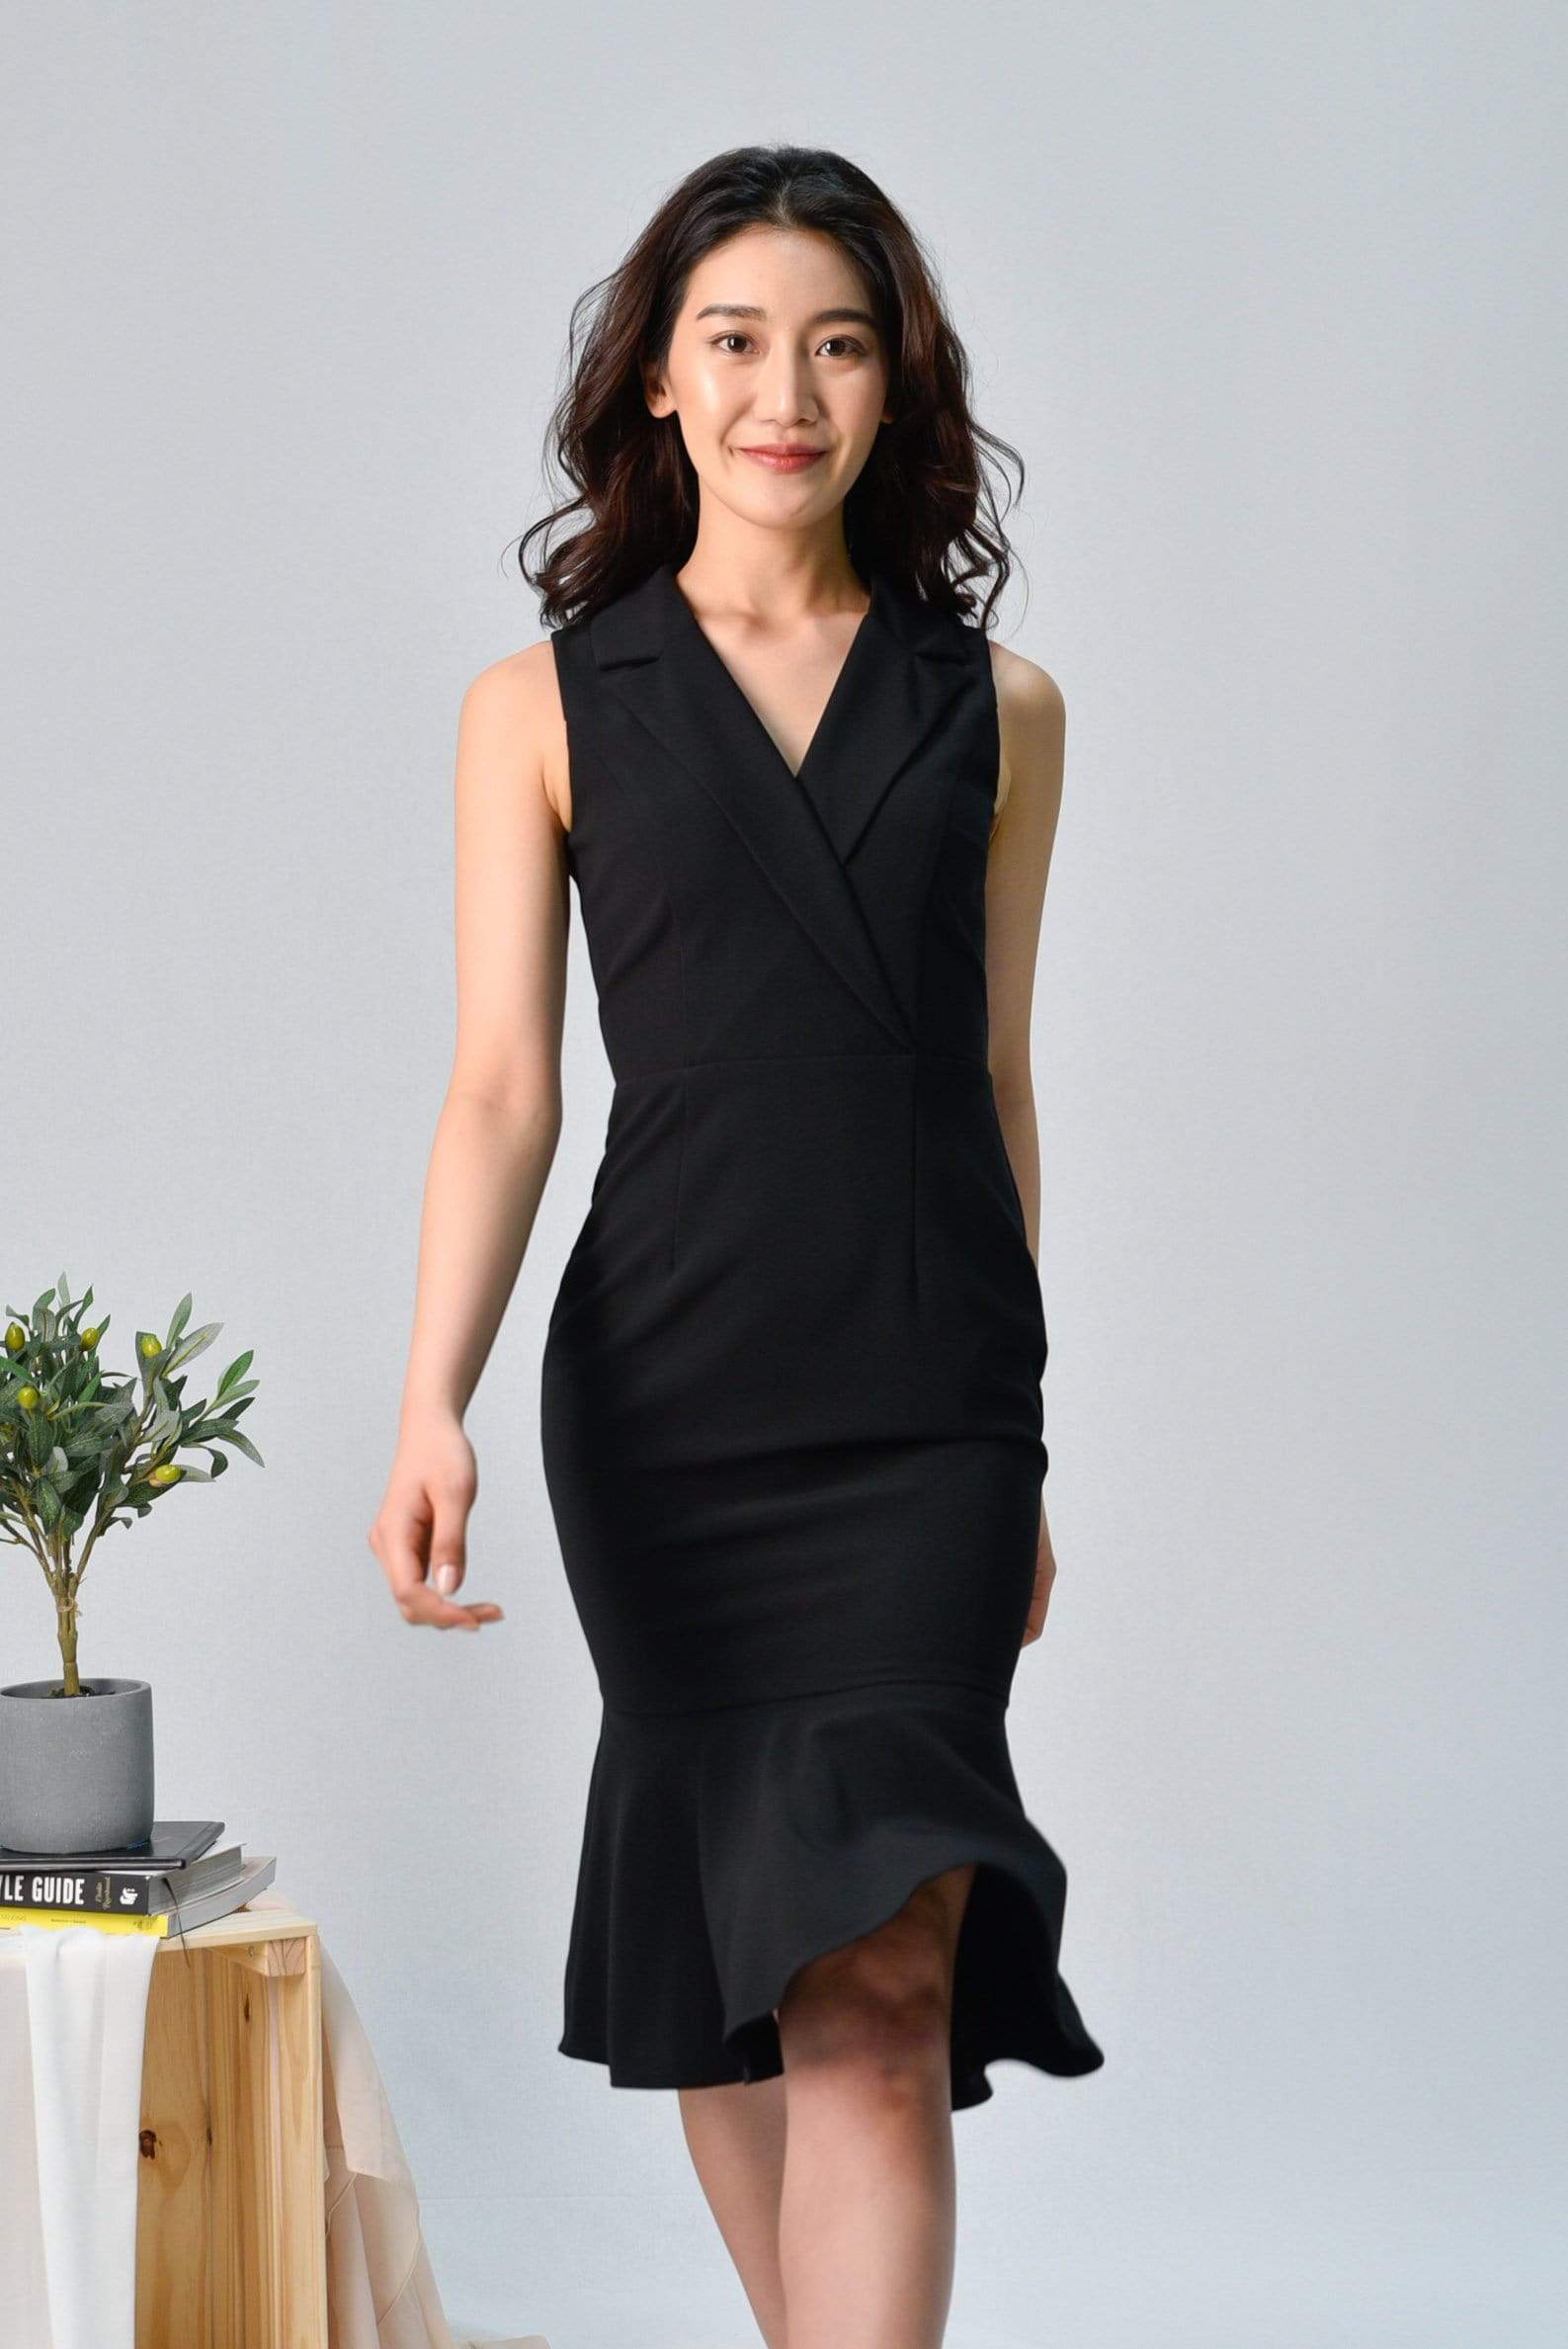 SIENA BLACK TUXEDO MERMAID DRESS